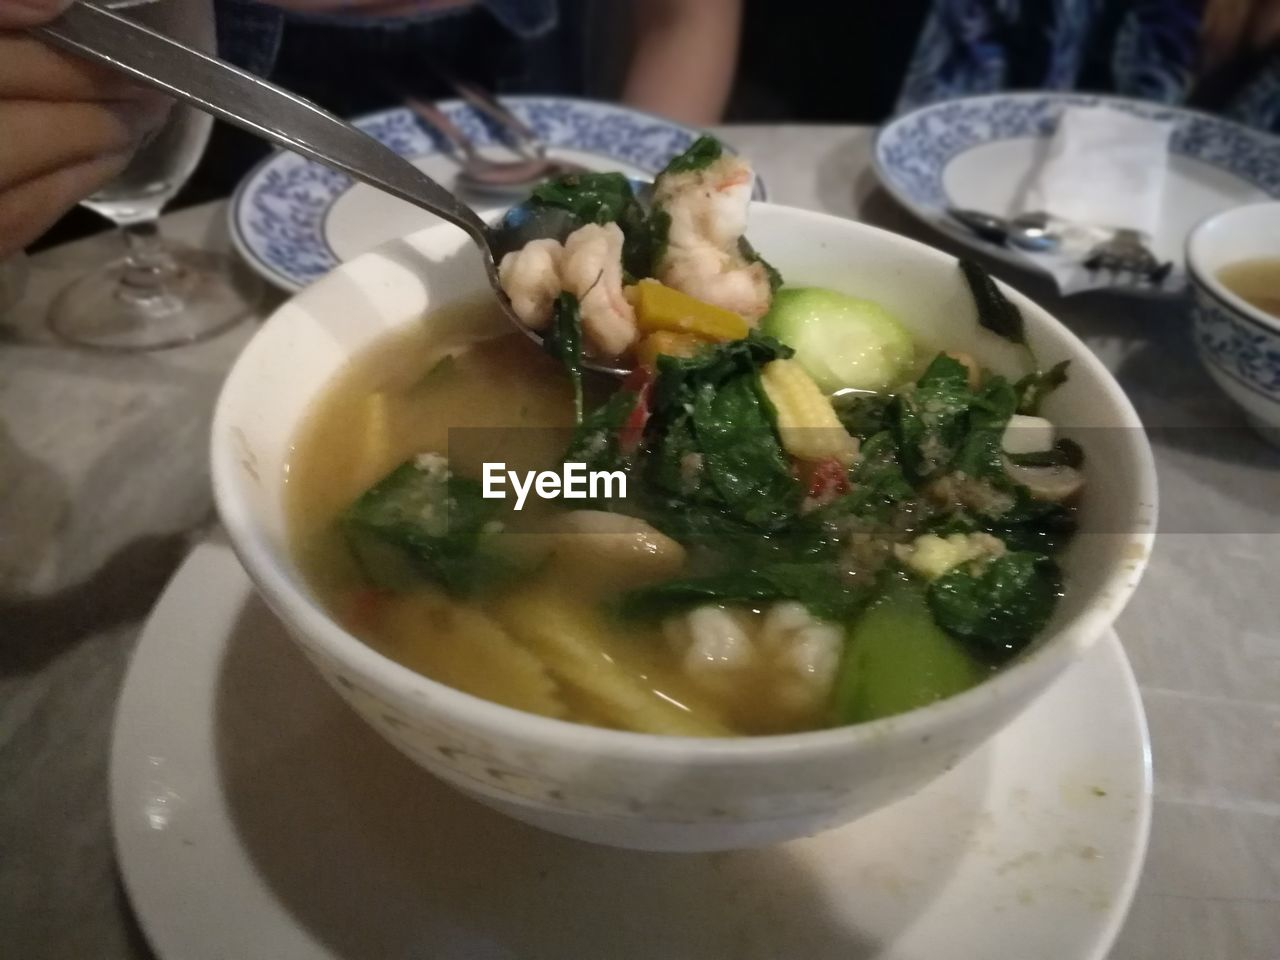 food and drink, food, bowl, healthy eating, freshness, soup, table, one person, serving size, vegetable, indoors, ready-to-eat, real people, human hand, healthy lifestyle, plate, holding, close-up, chopsticks, human body part, vegetable soup, day, people